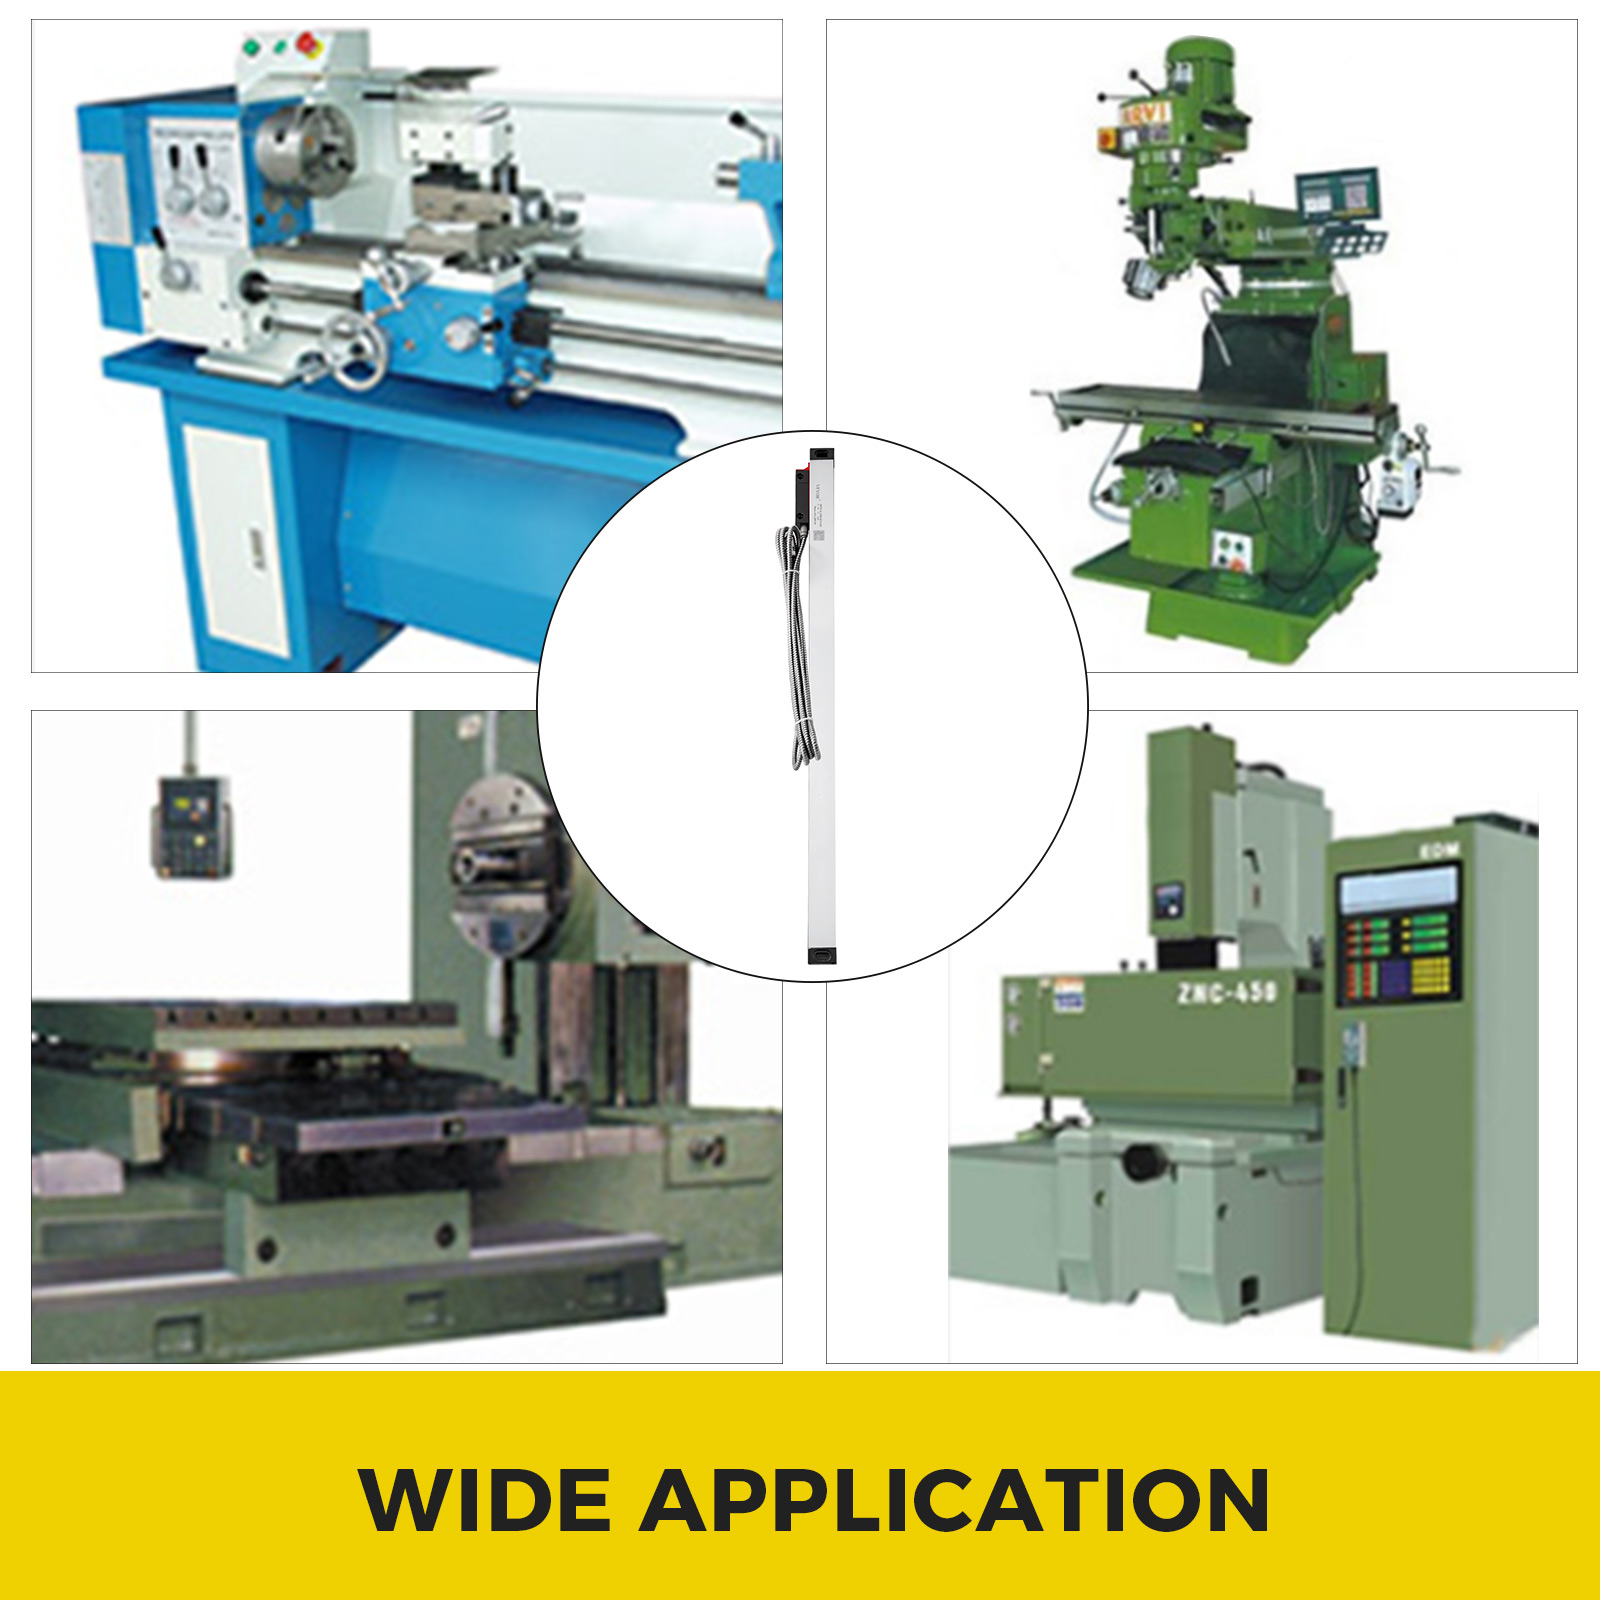 2-3-Axis-Digital-Readout-Linear-Scale-Double-Seal-5-Bearing-System-Grinding thumbnail 163